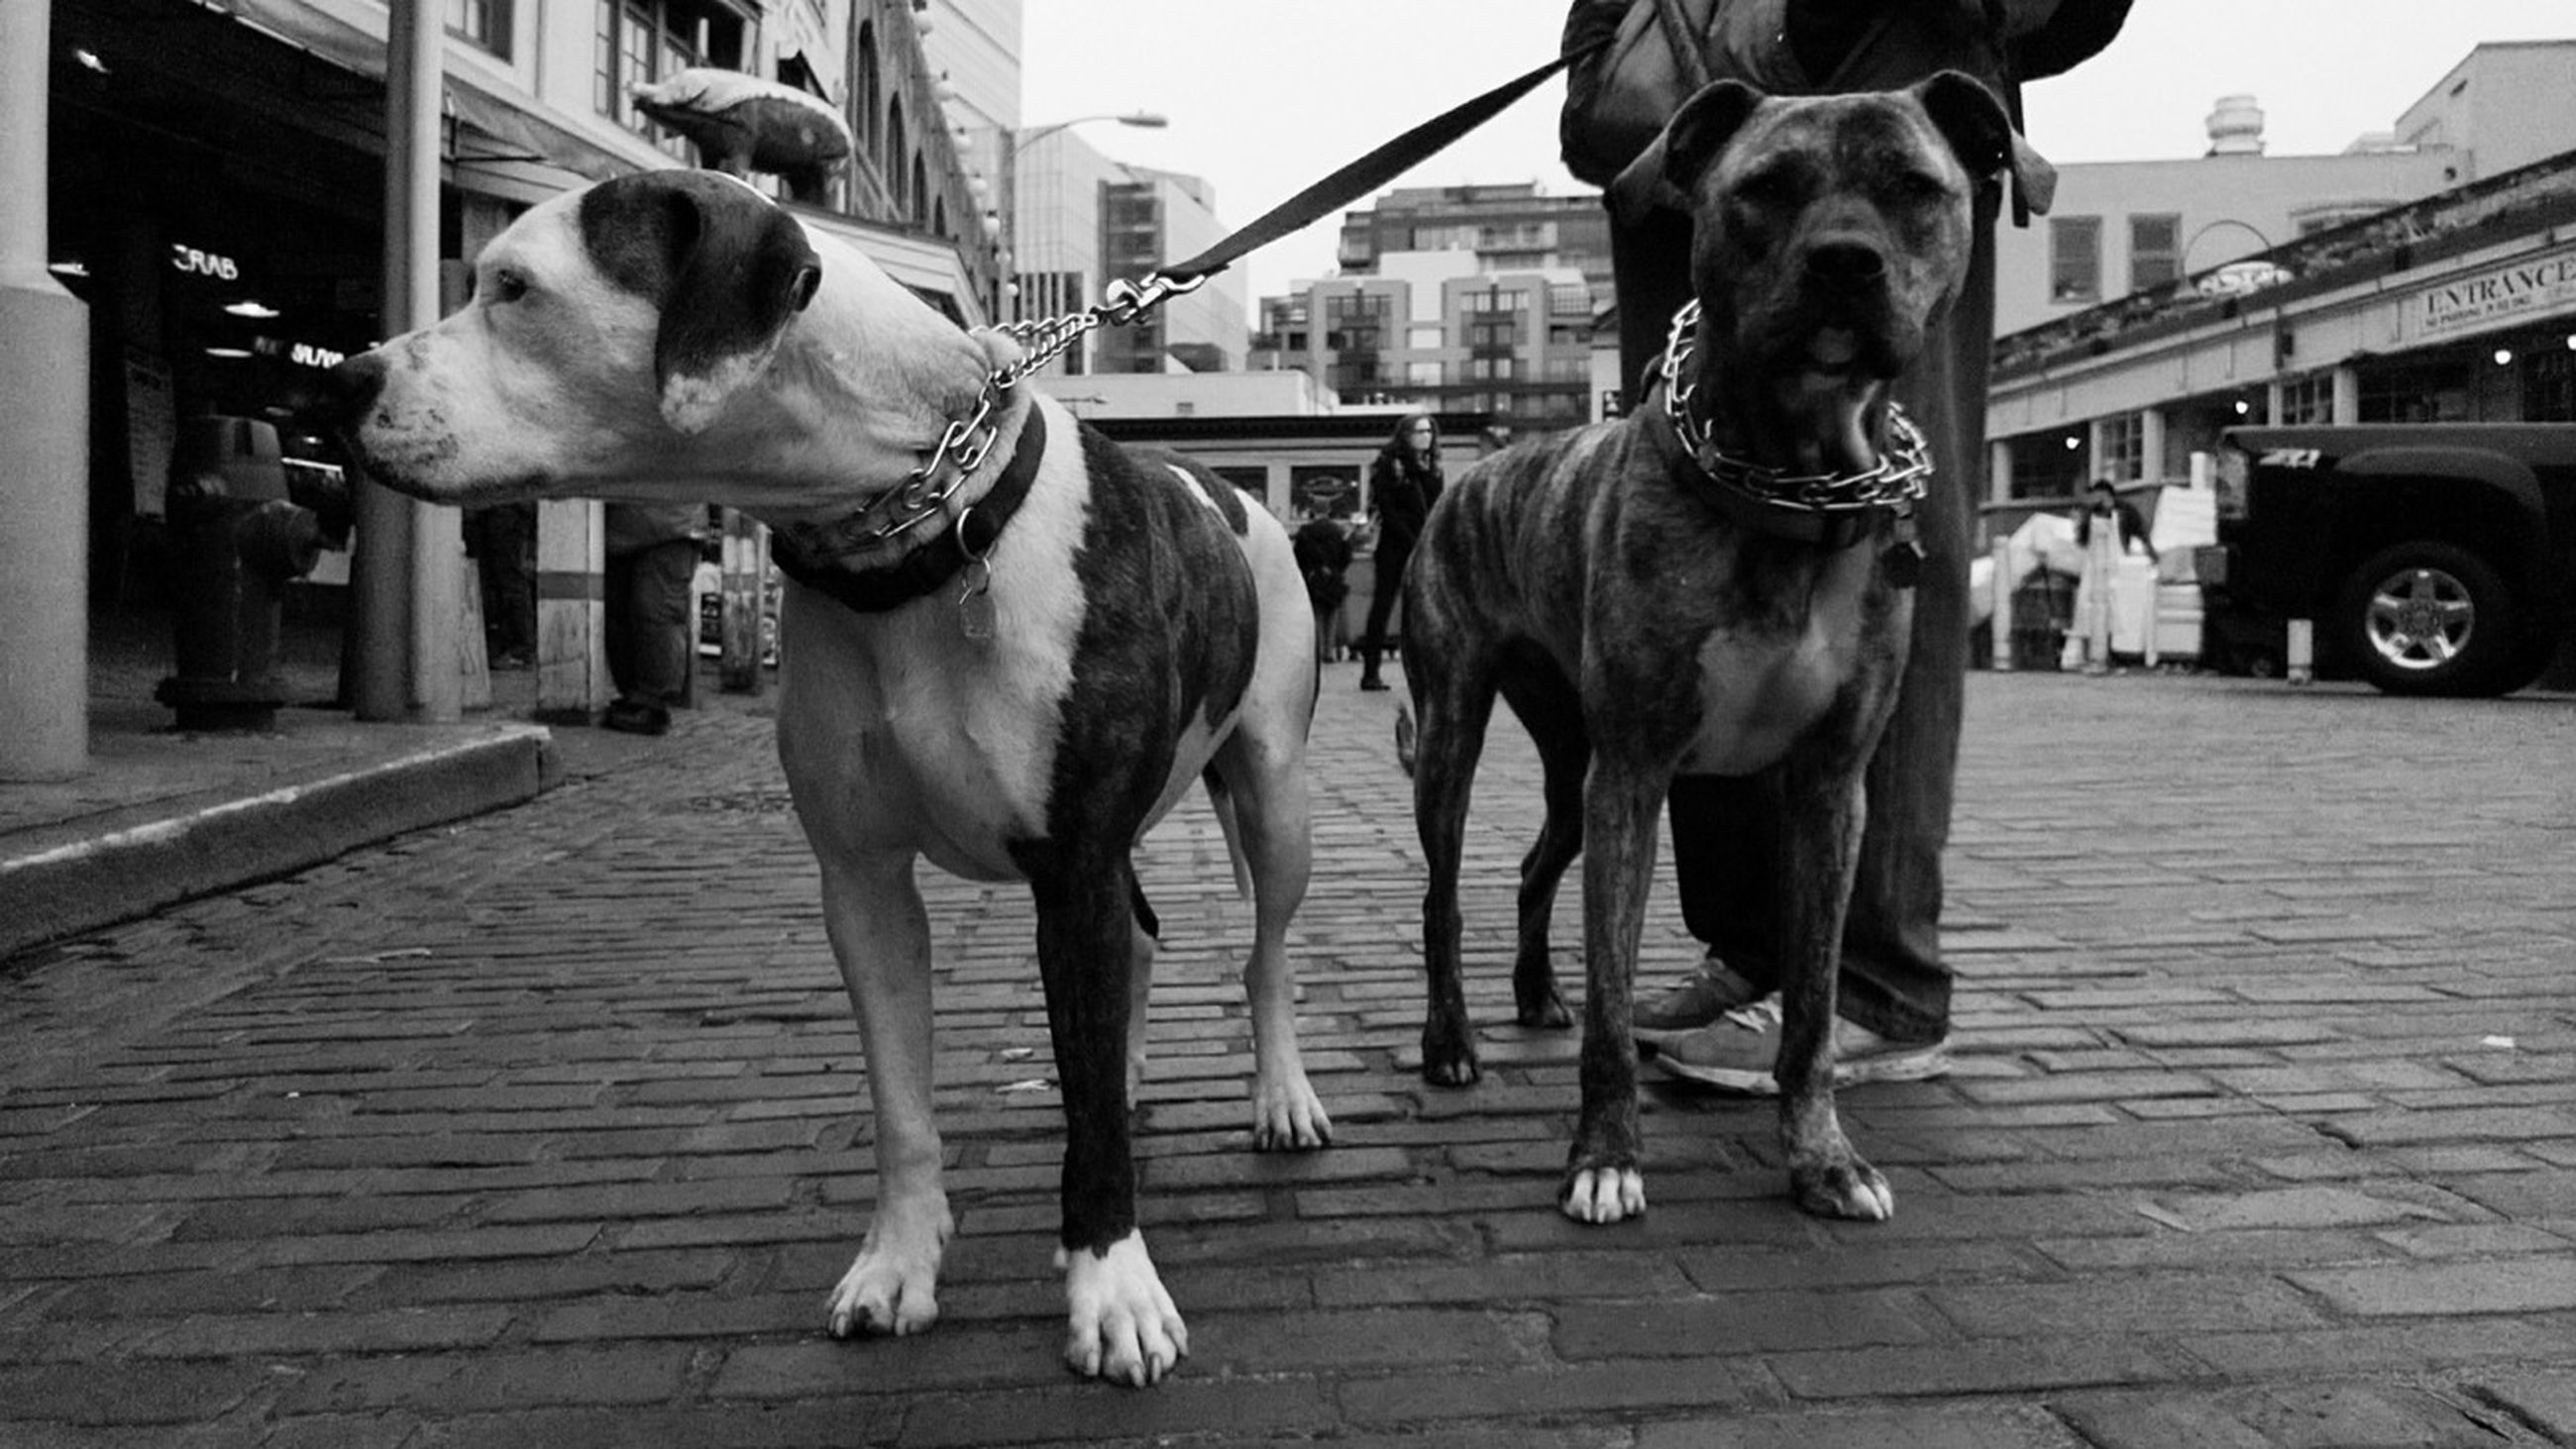 domestic animals, animal themes, dog, one animal, building exterior, mammal, pets, built structure, architecture, street, city, full length, pet leash, incidental people, sidewalk, standing, men, sunlight